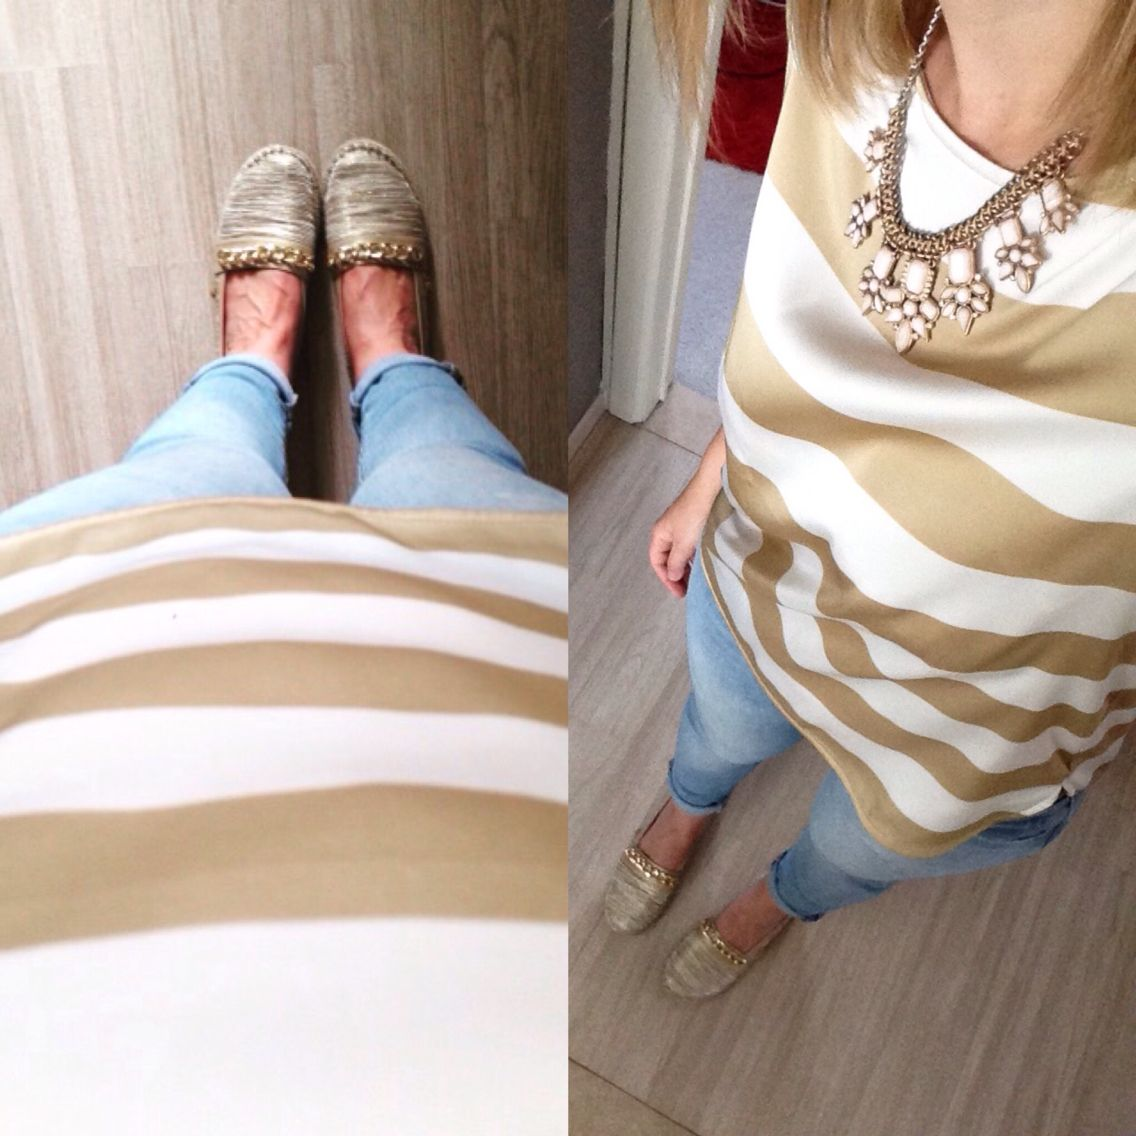 Outfit of the day #ootd #mcgregor #blouse #jeans #espadrilles